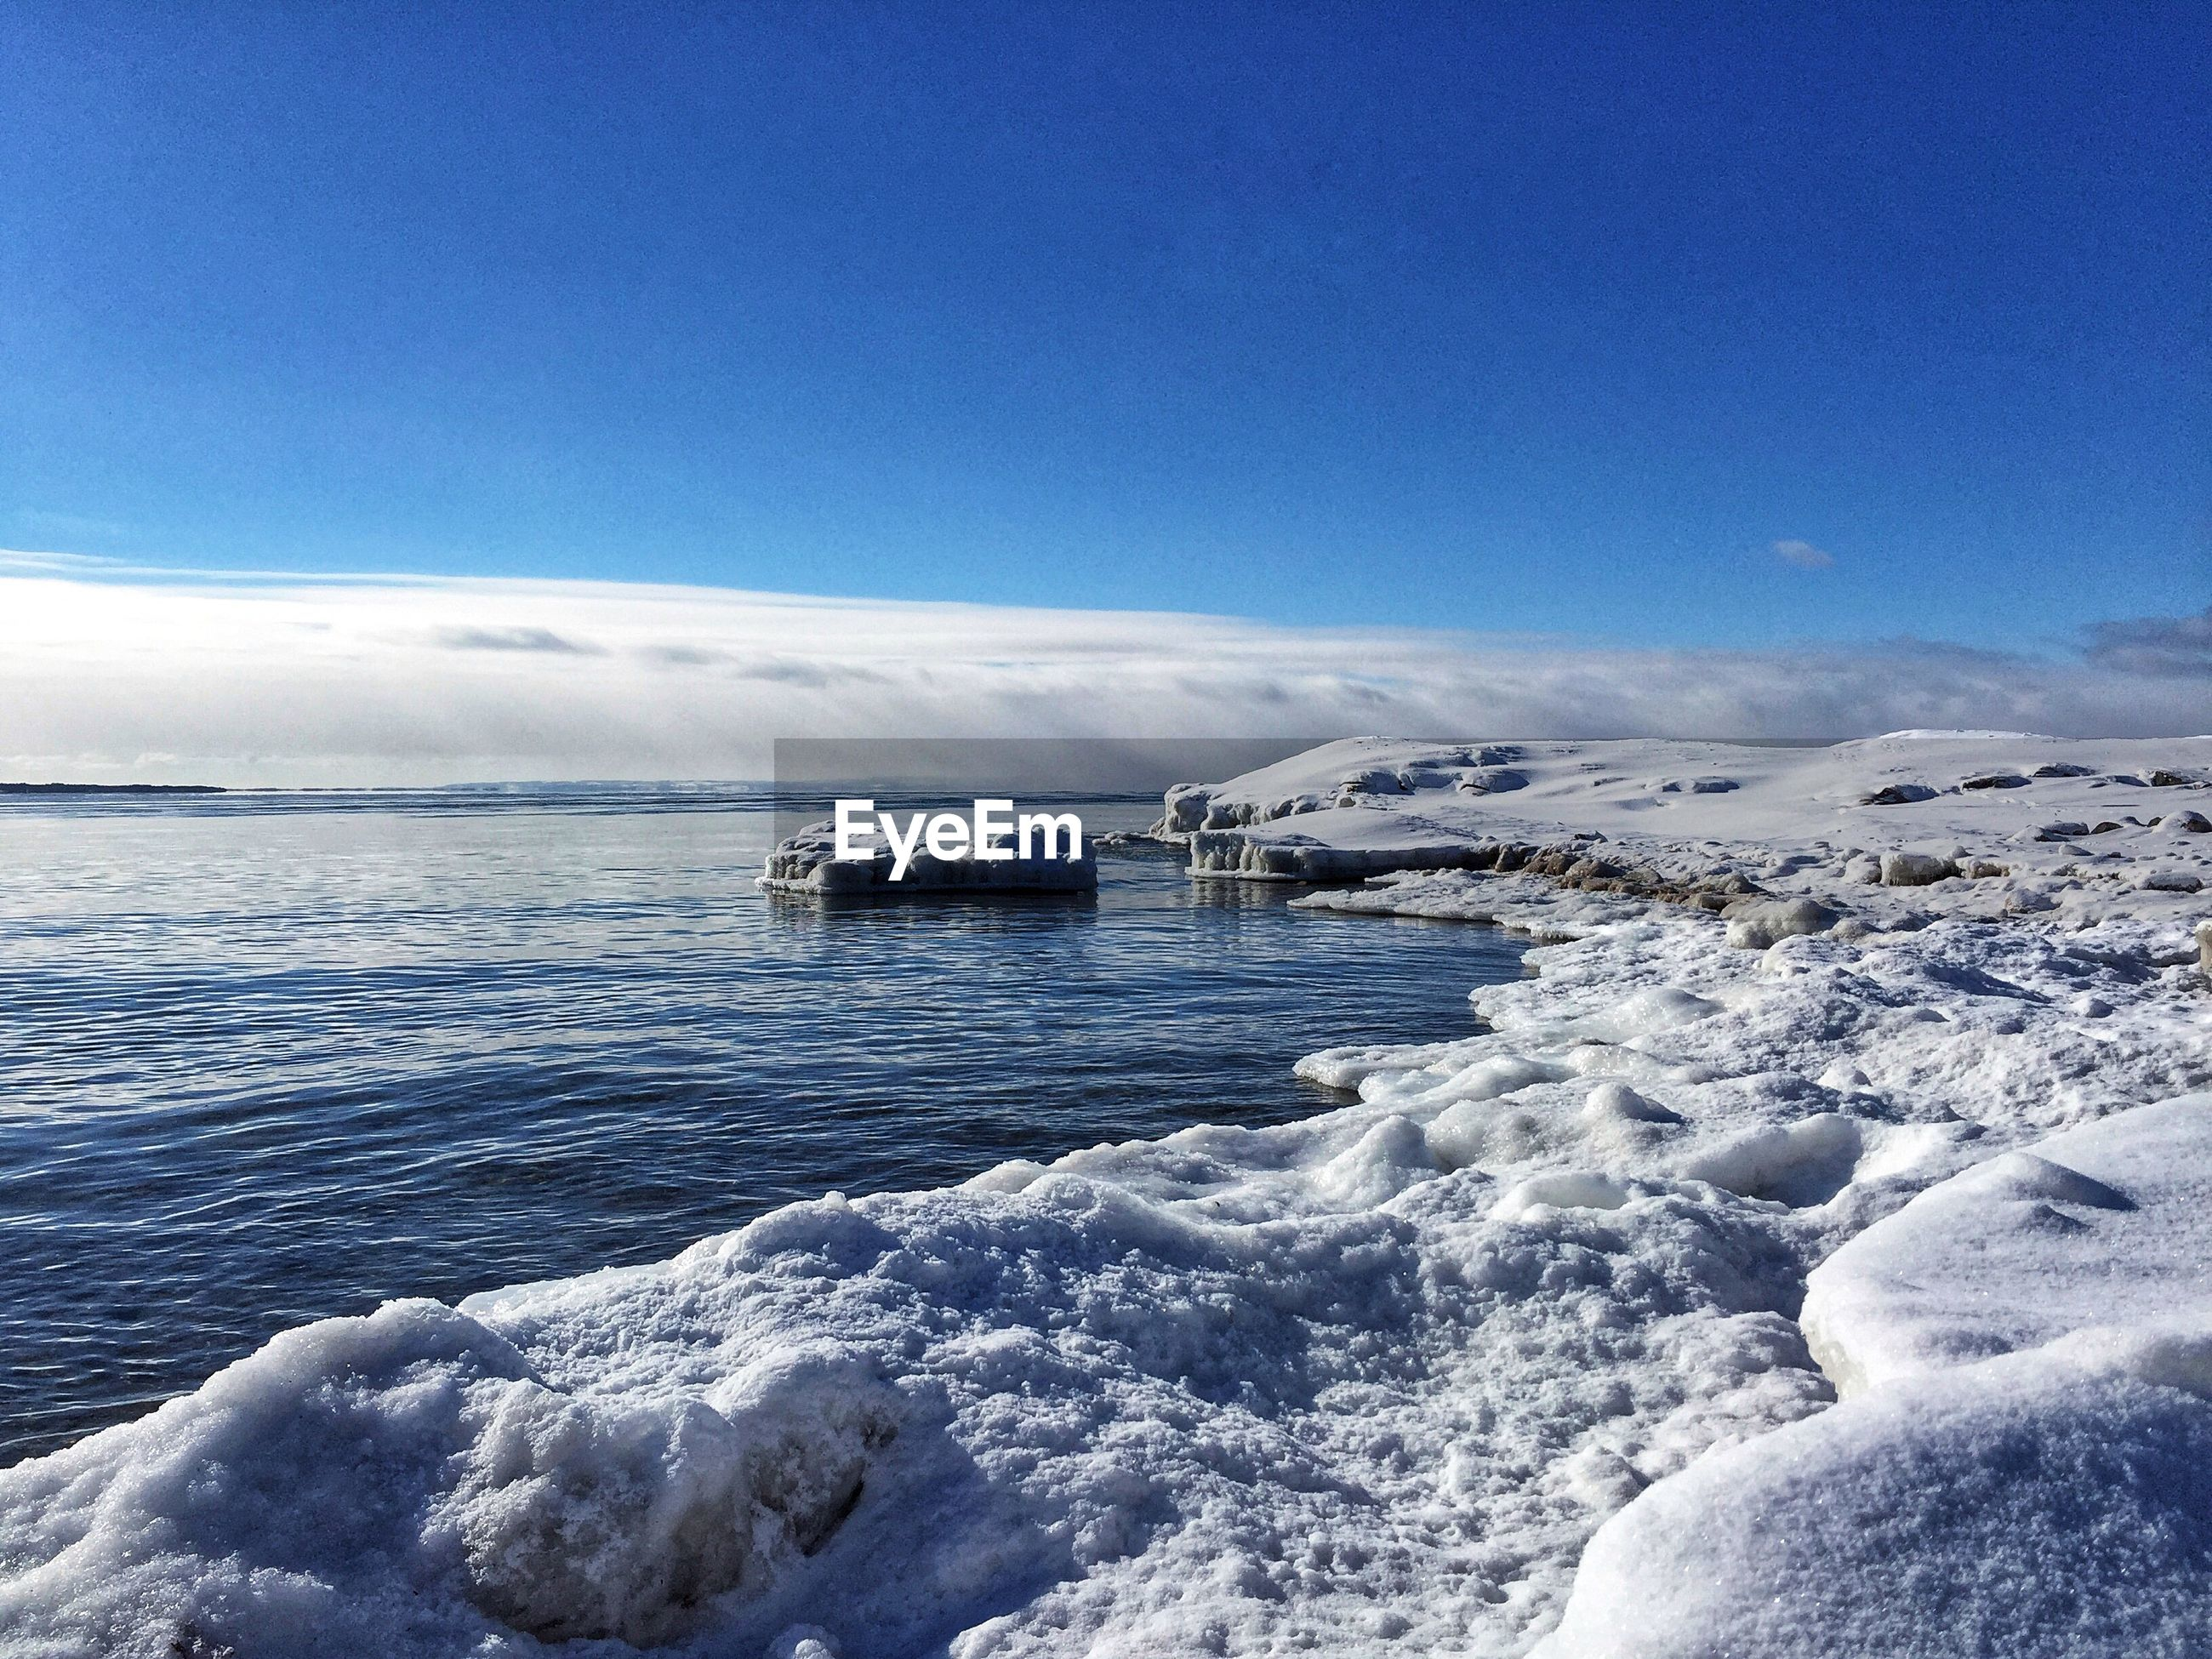 SCENIC VIEW OF SEA AGAINST BLUE SKY DURING WINTER